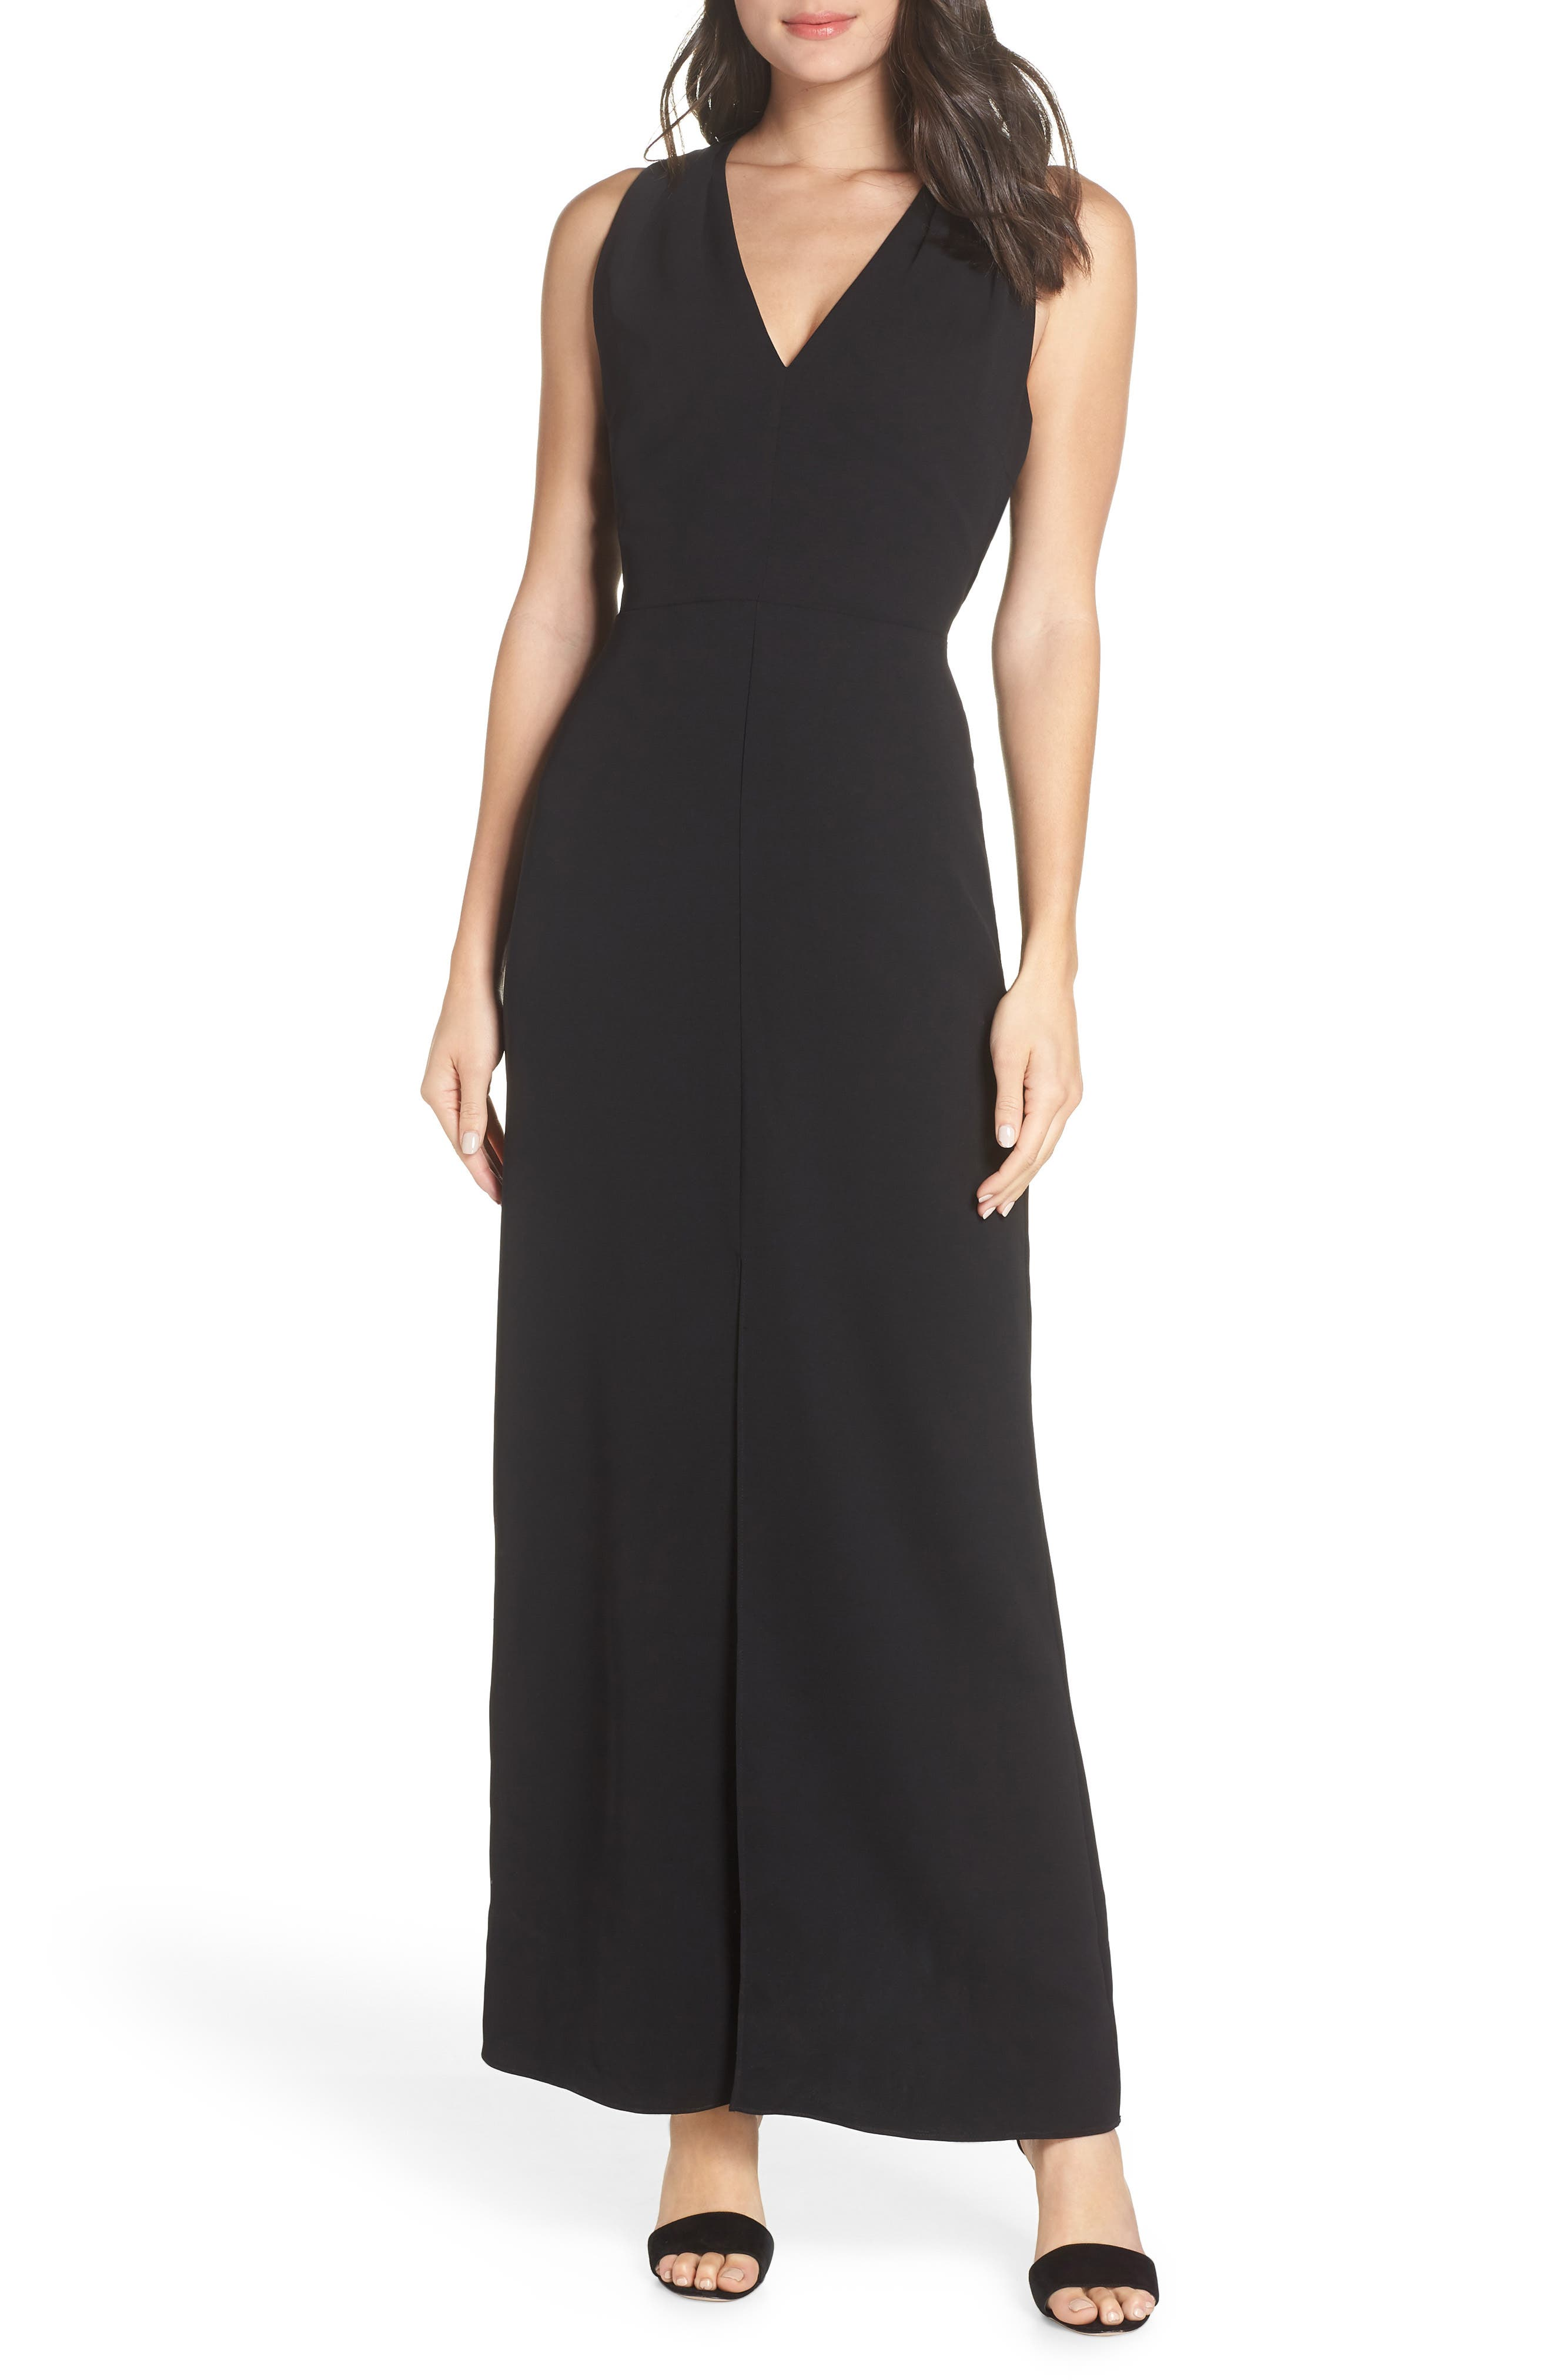 Harlyn Halter Neck Tie Back Evening Dress, Black